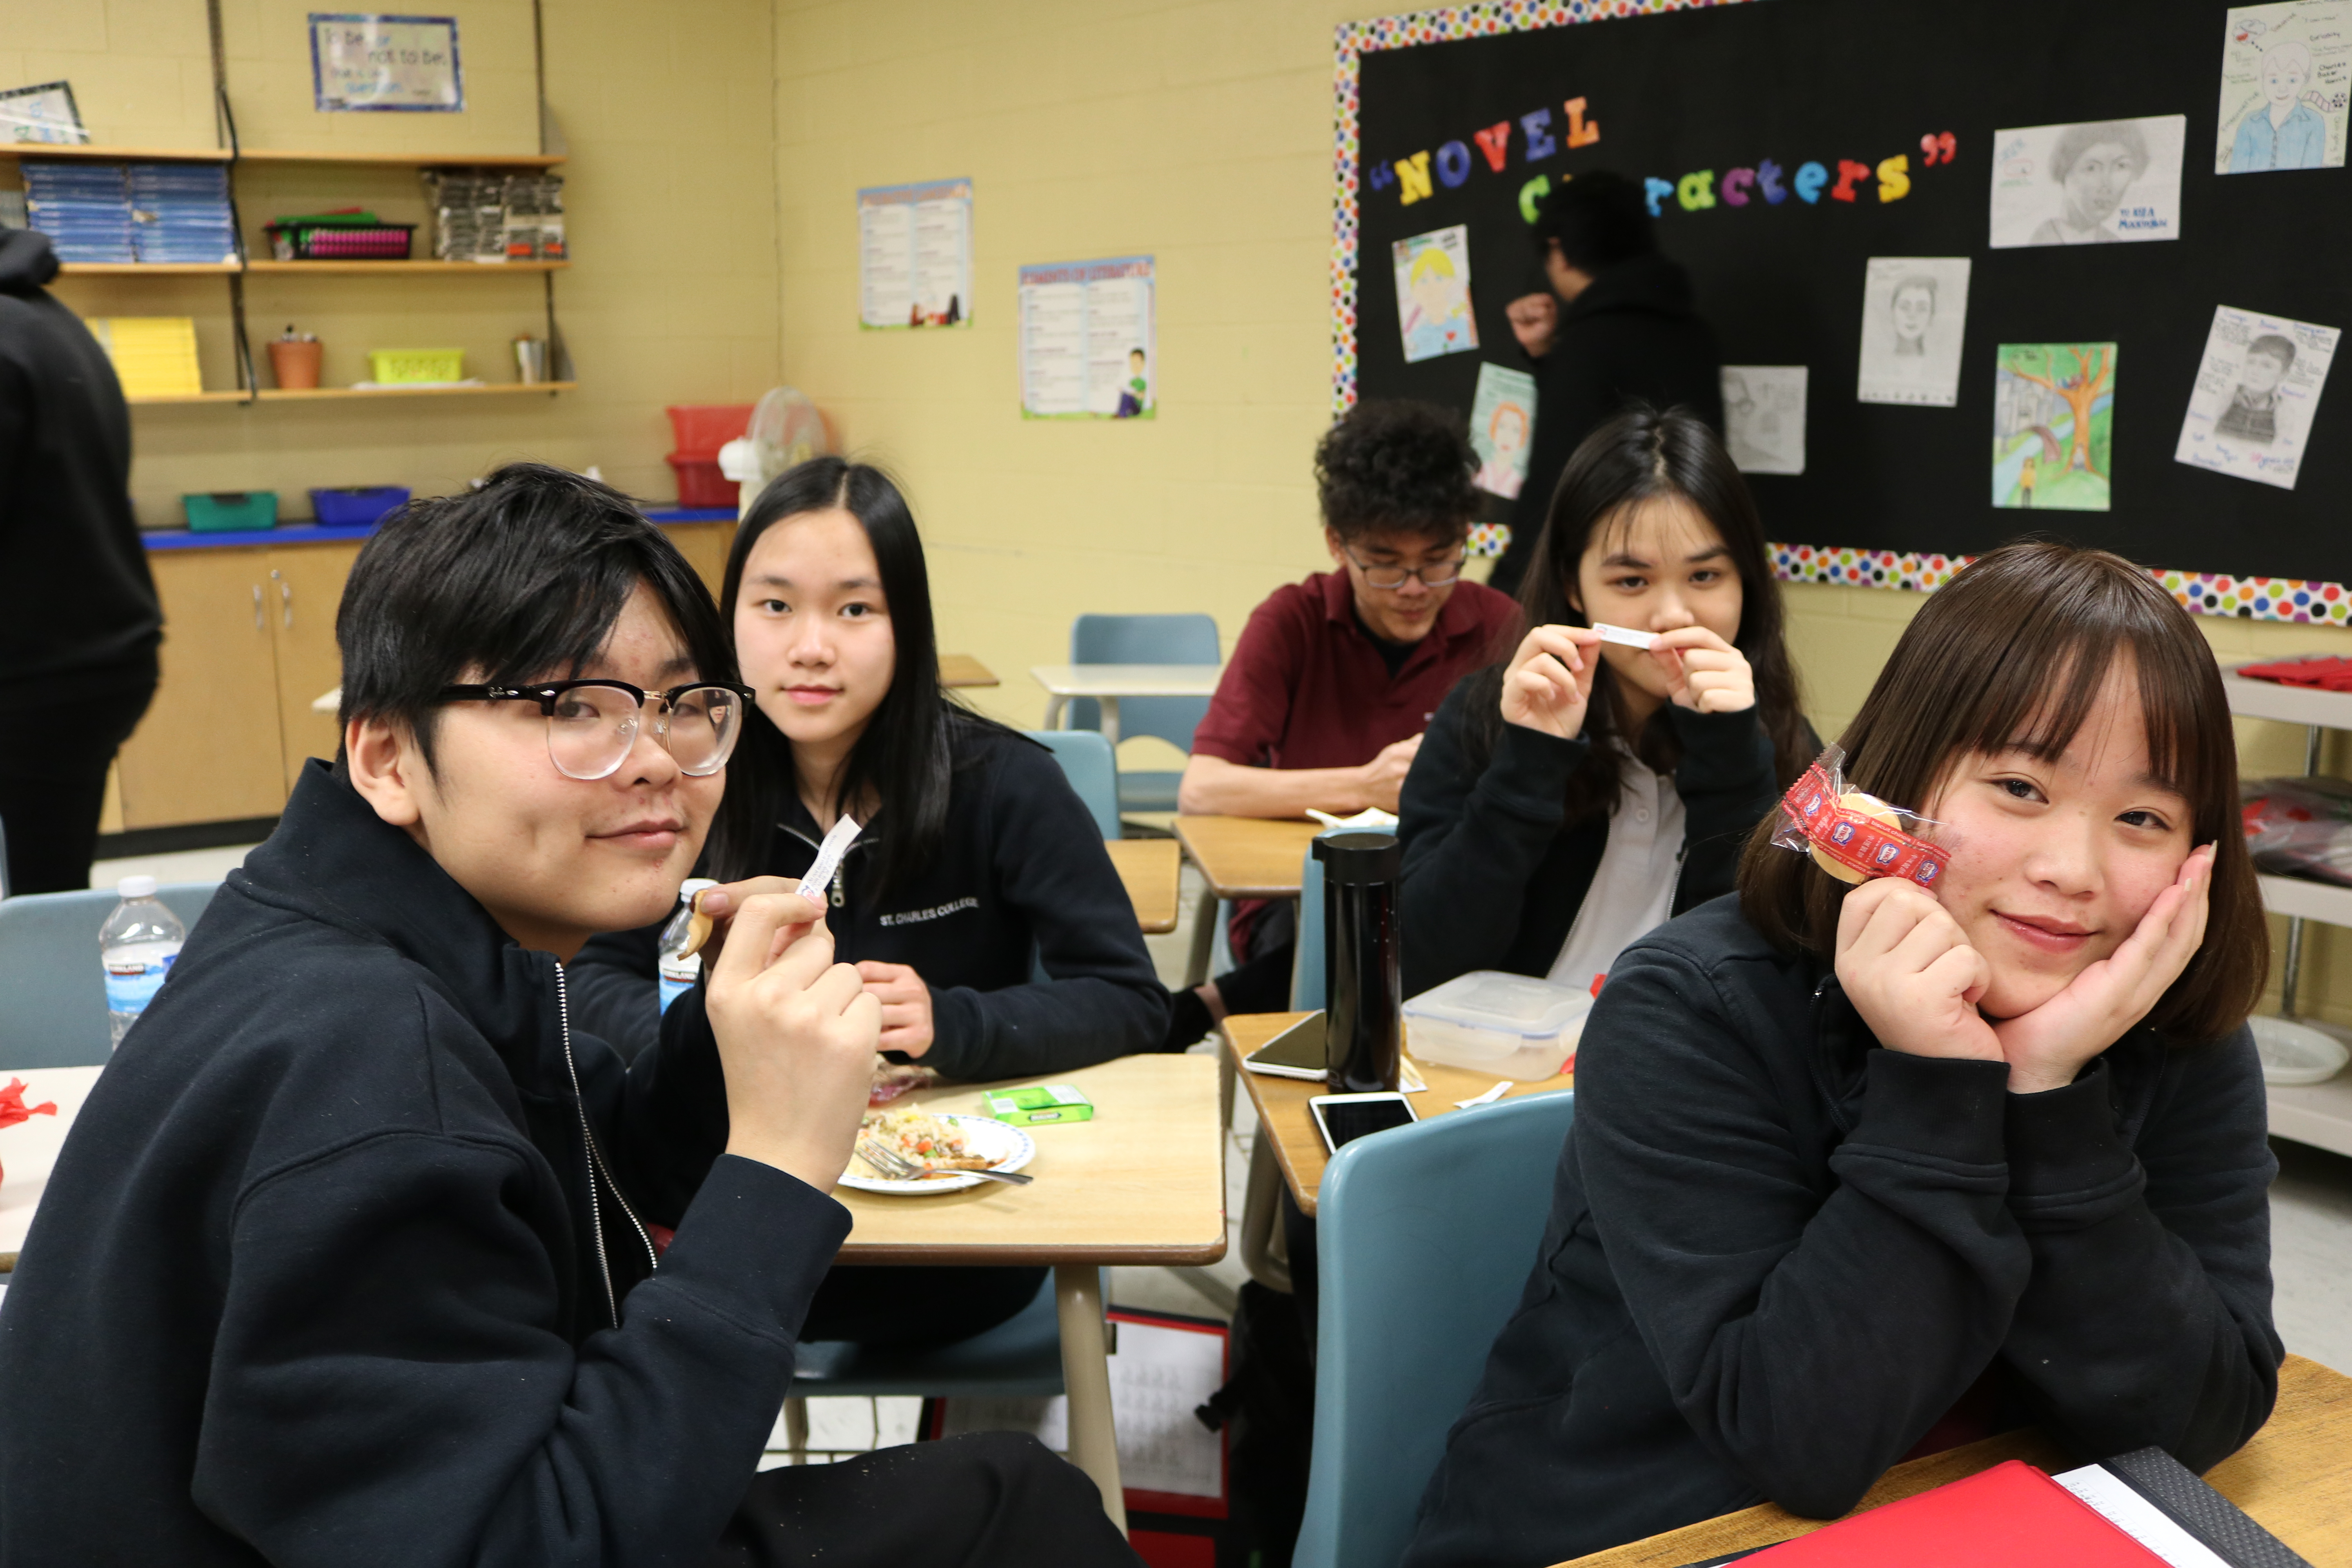 Chinese Students sit smiling as they feast on a traditional Chinese meal.